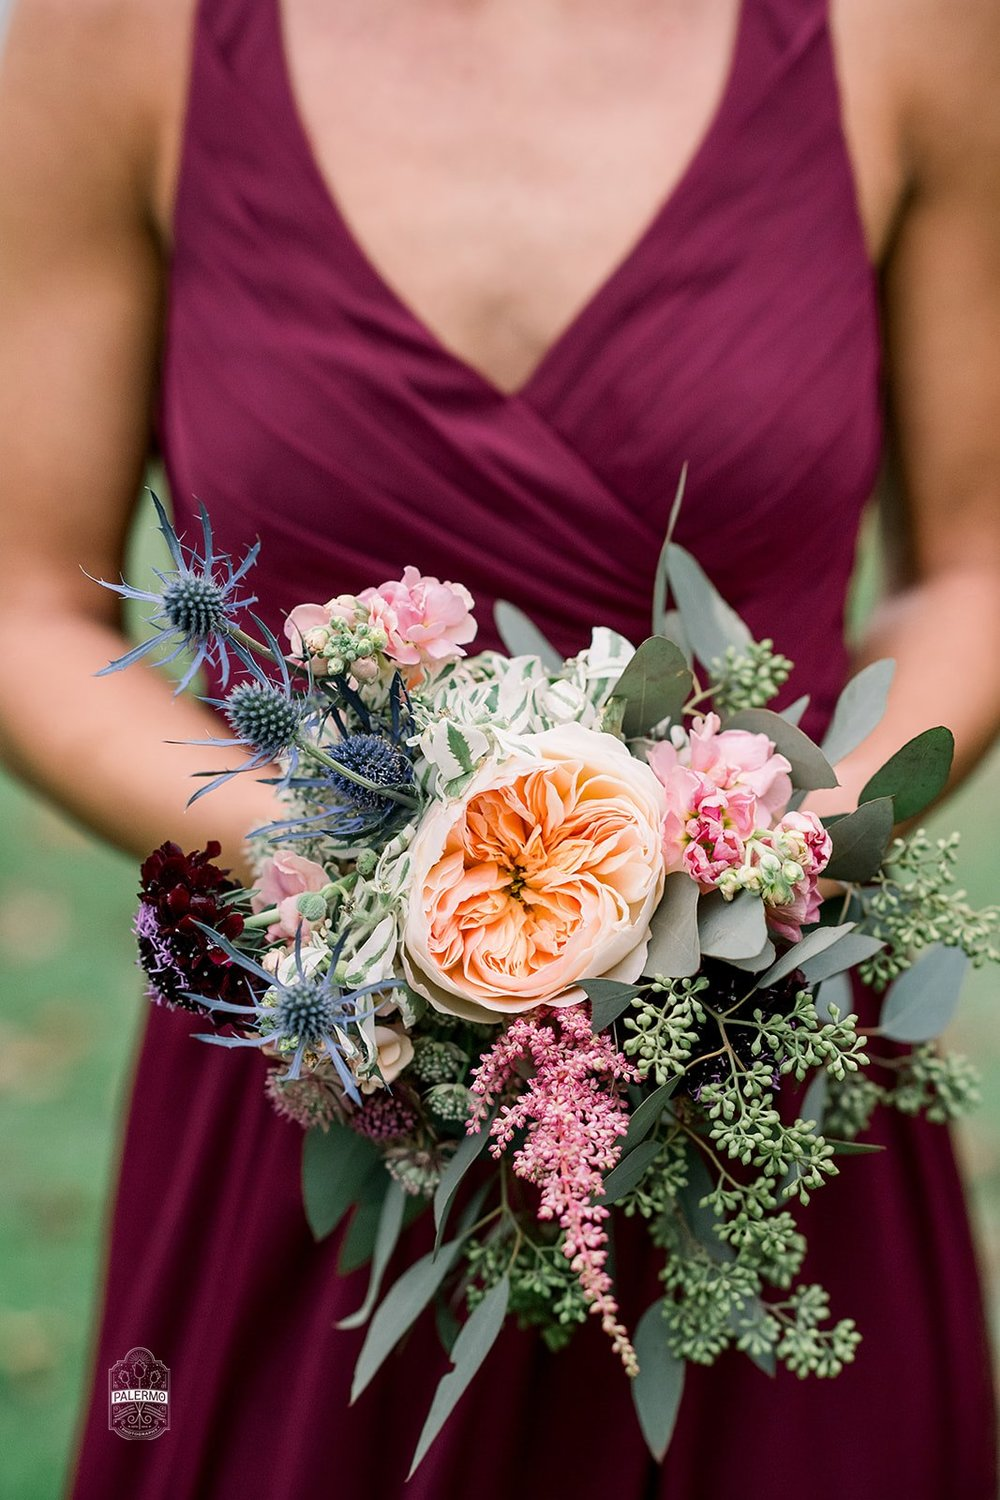 Sangria bridesmaids dresses with wedding bouquet for fall barn wedding in Pittsburgh, PA planned by Exhale Events. Find more wedding inspiration at exhale-events.com!